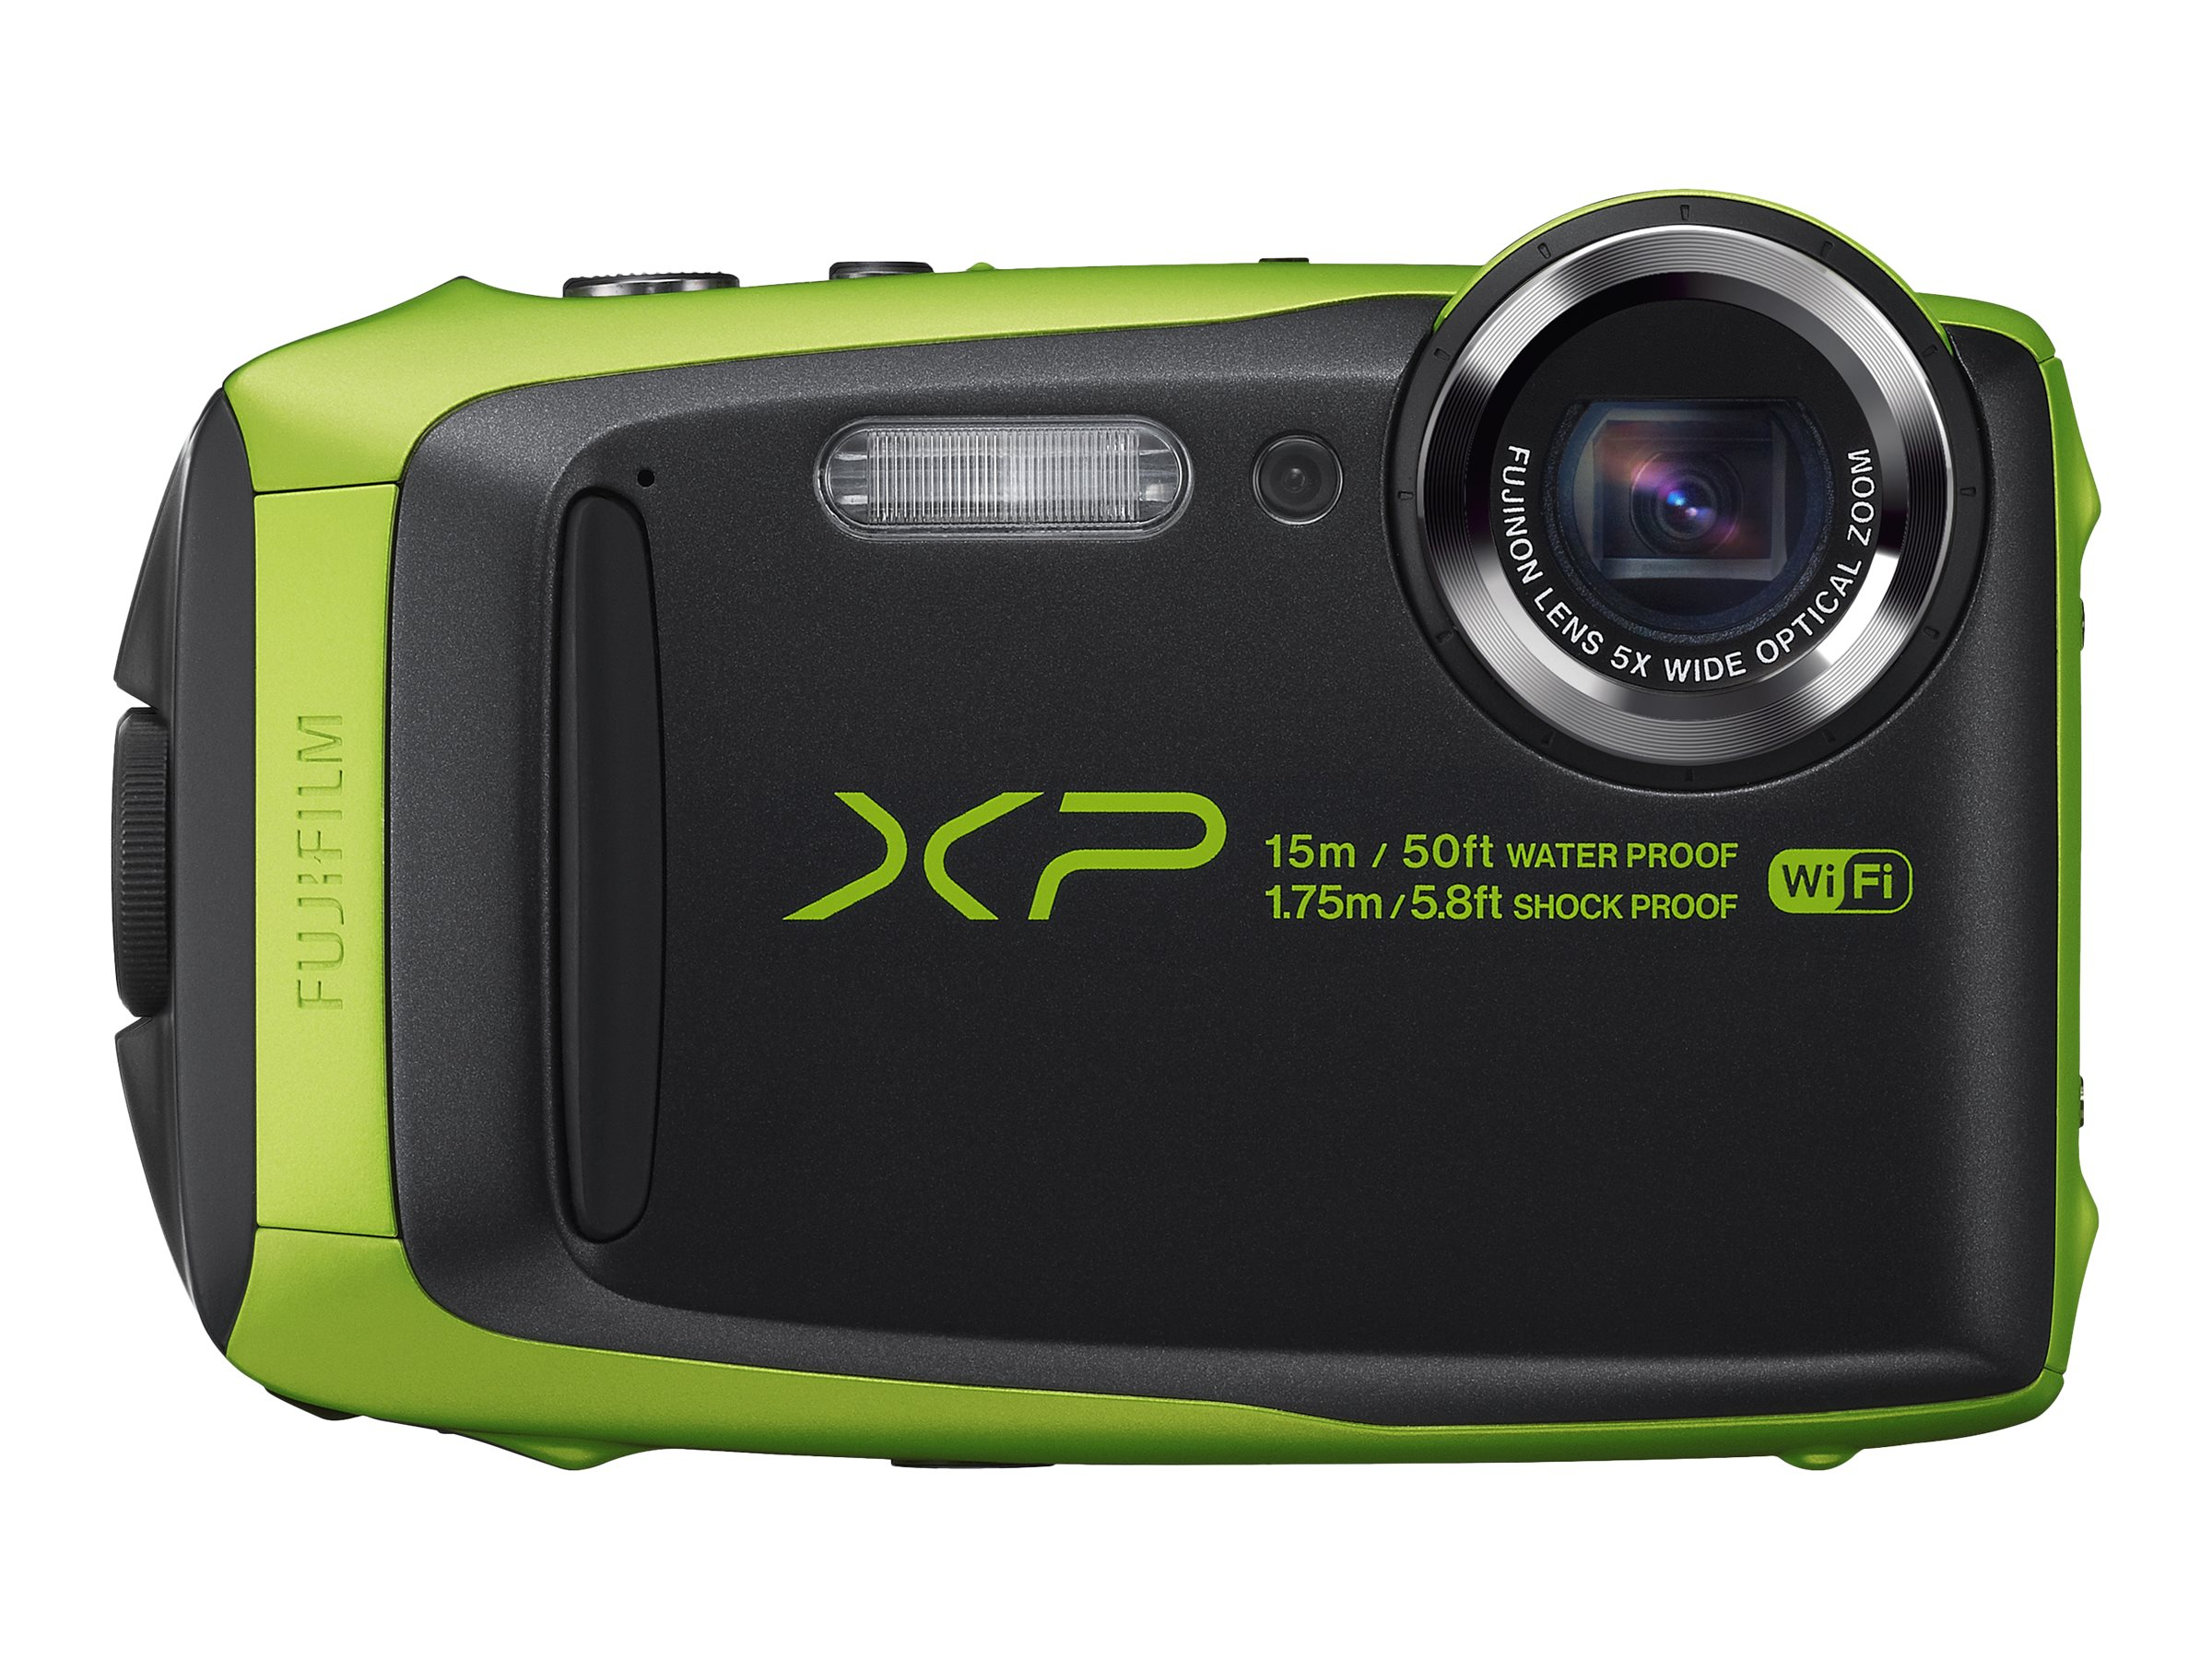 Fujifilm FinePix XP90 Waterproof WiFi Camera, 16.4MP, 5x Zoom, Lime, 16500208, 31271575, Cameras - Digital - Point & Shoot